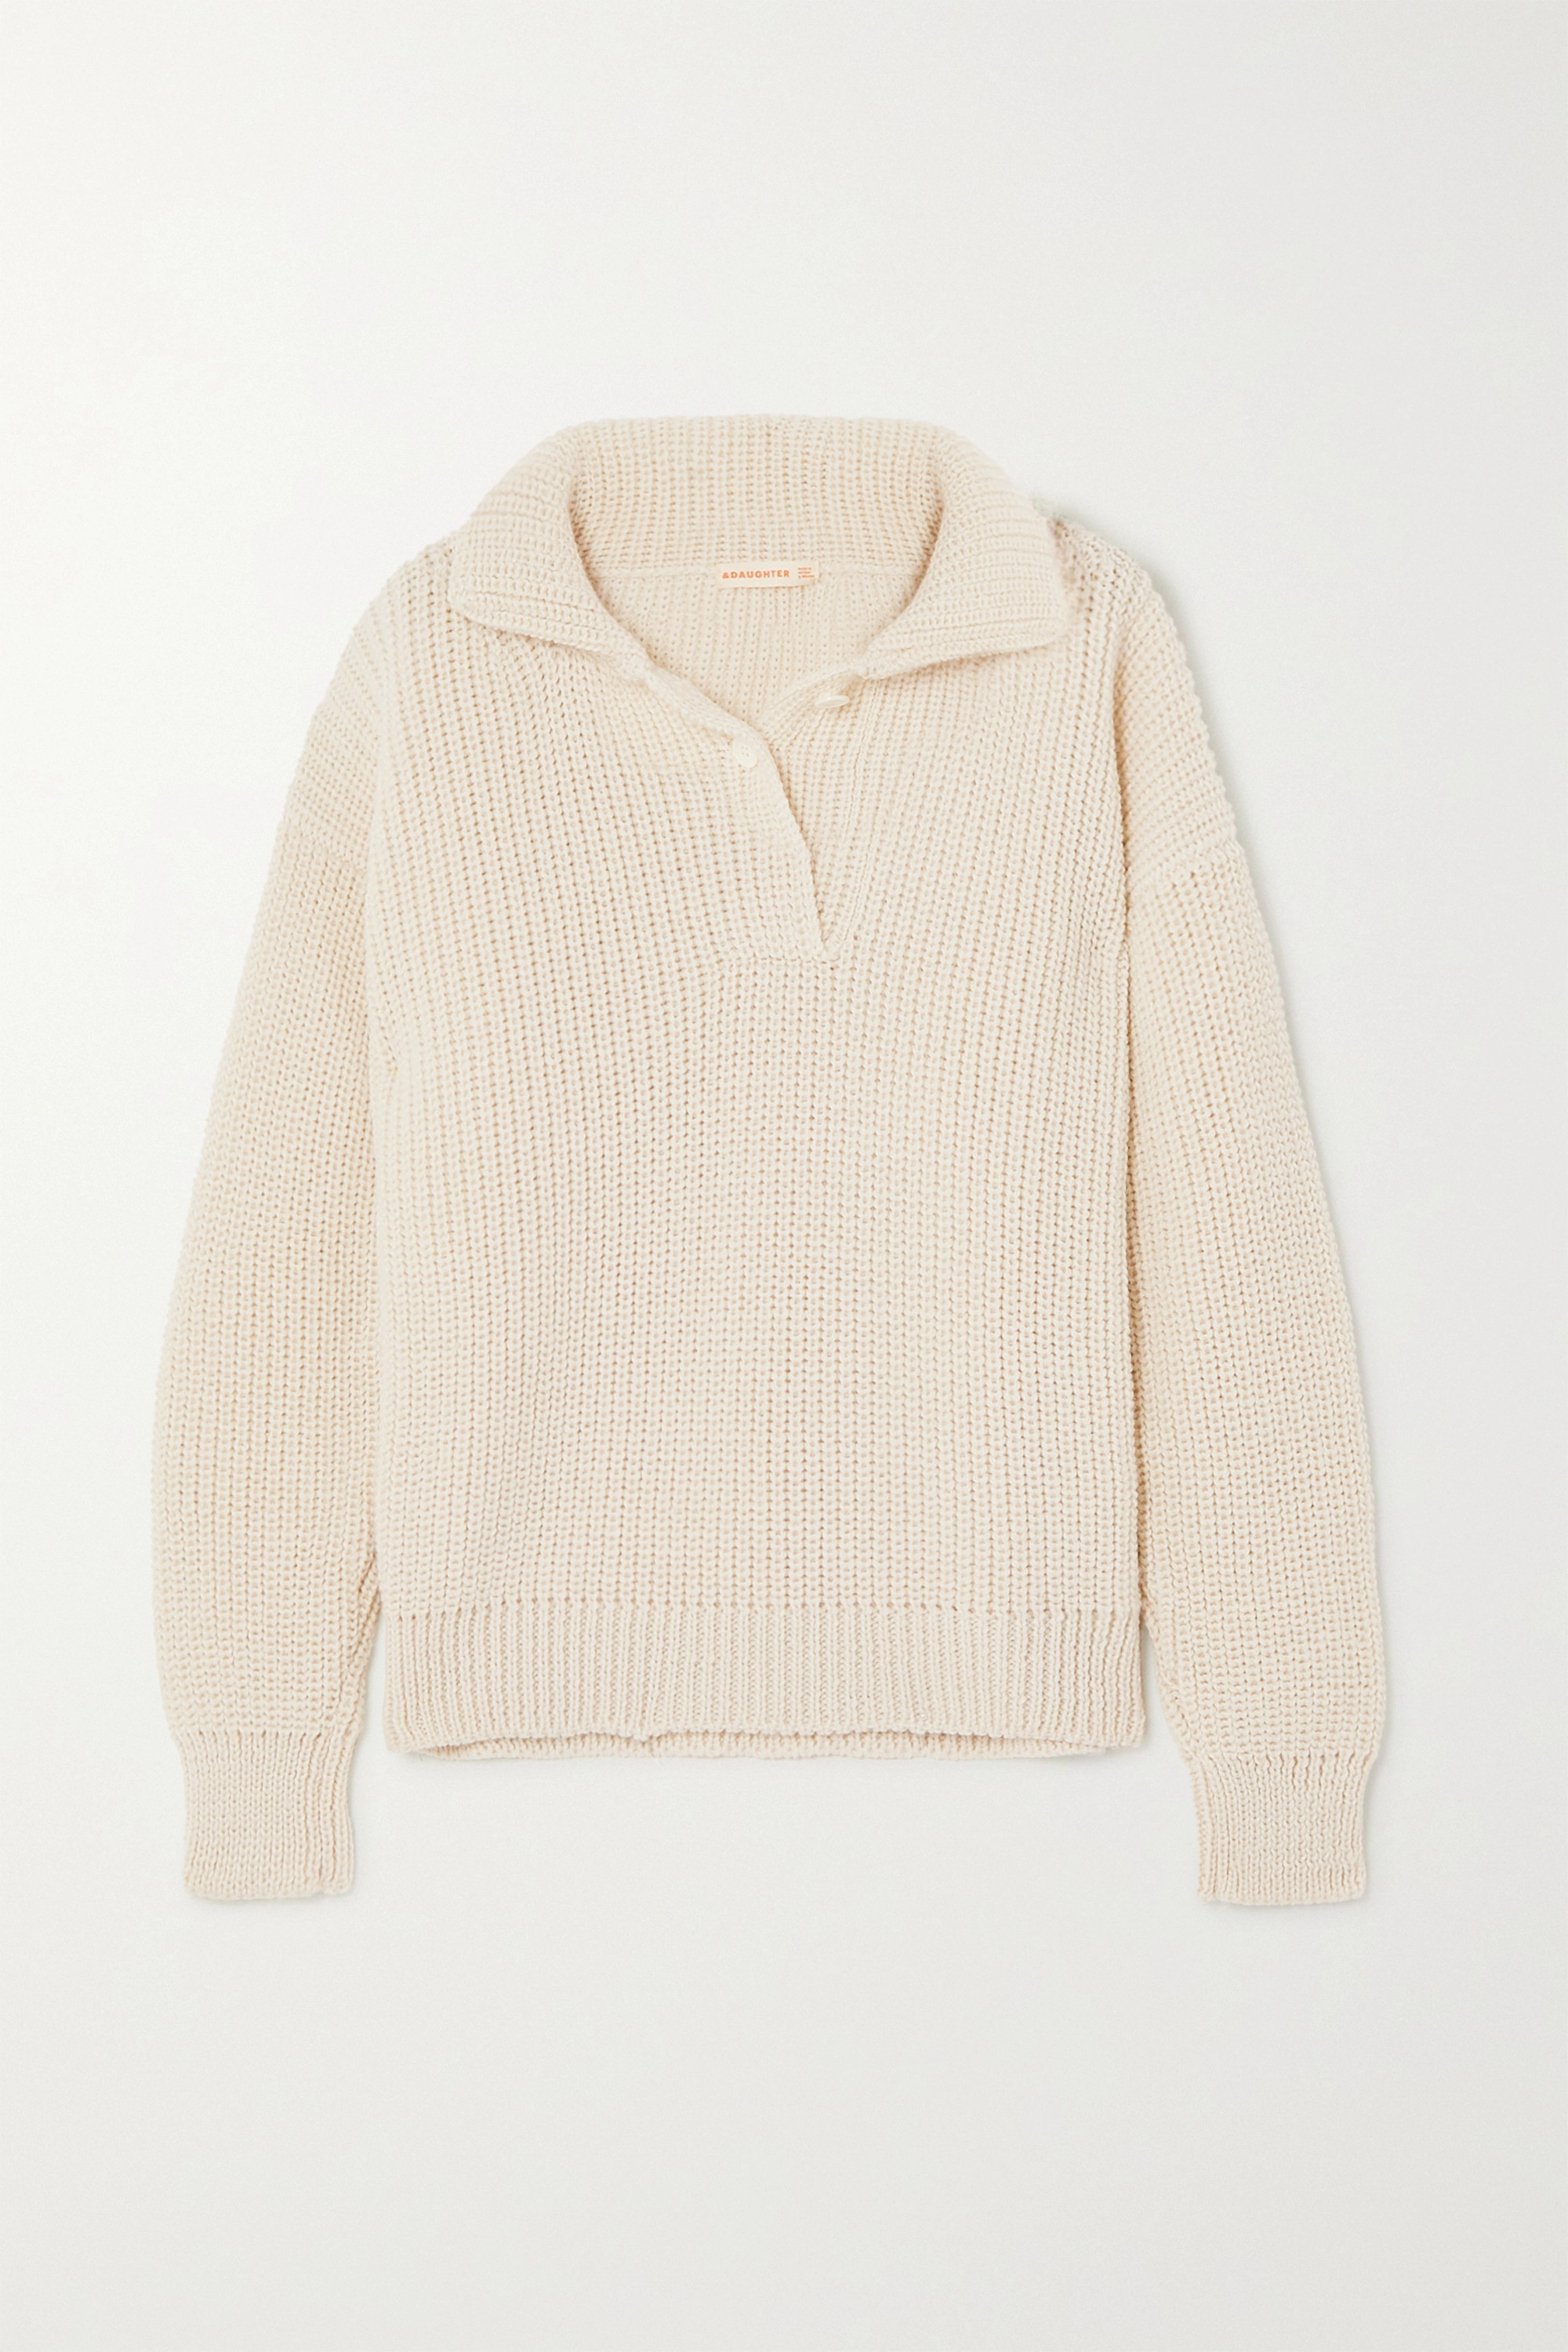 &Daughter Effie ribbed merino wool sweater